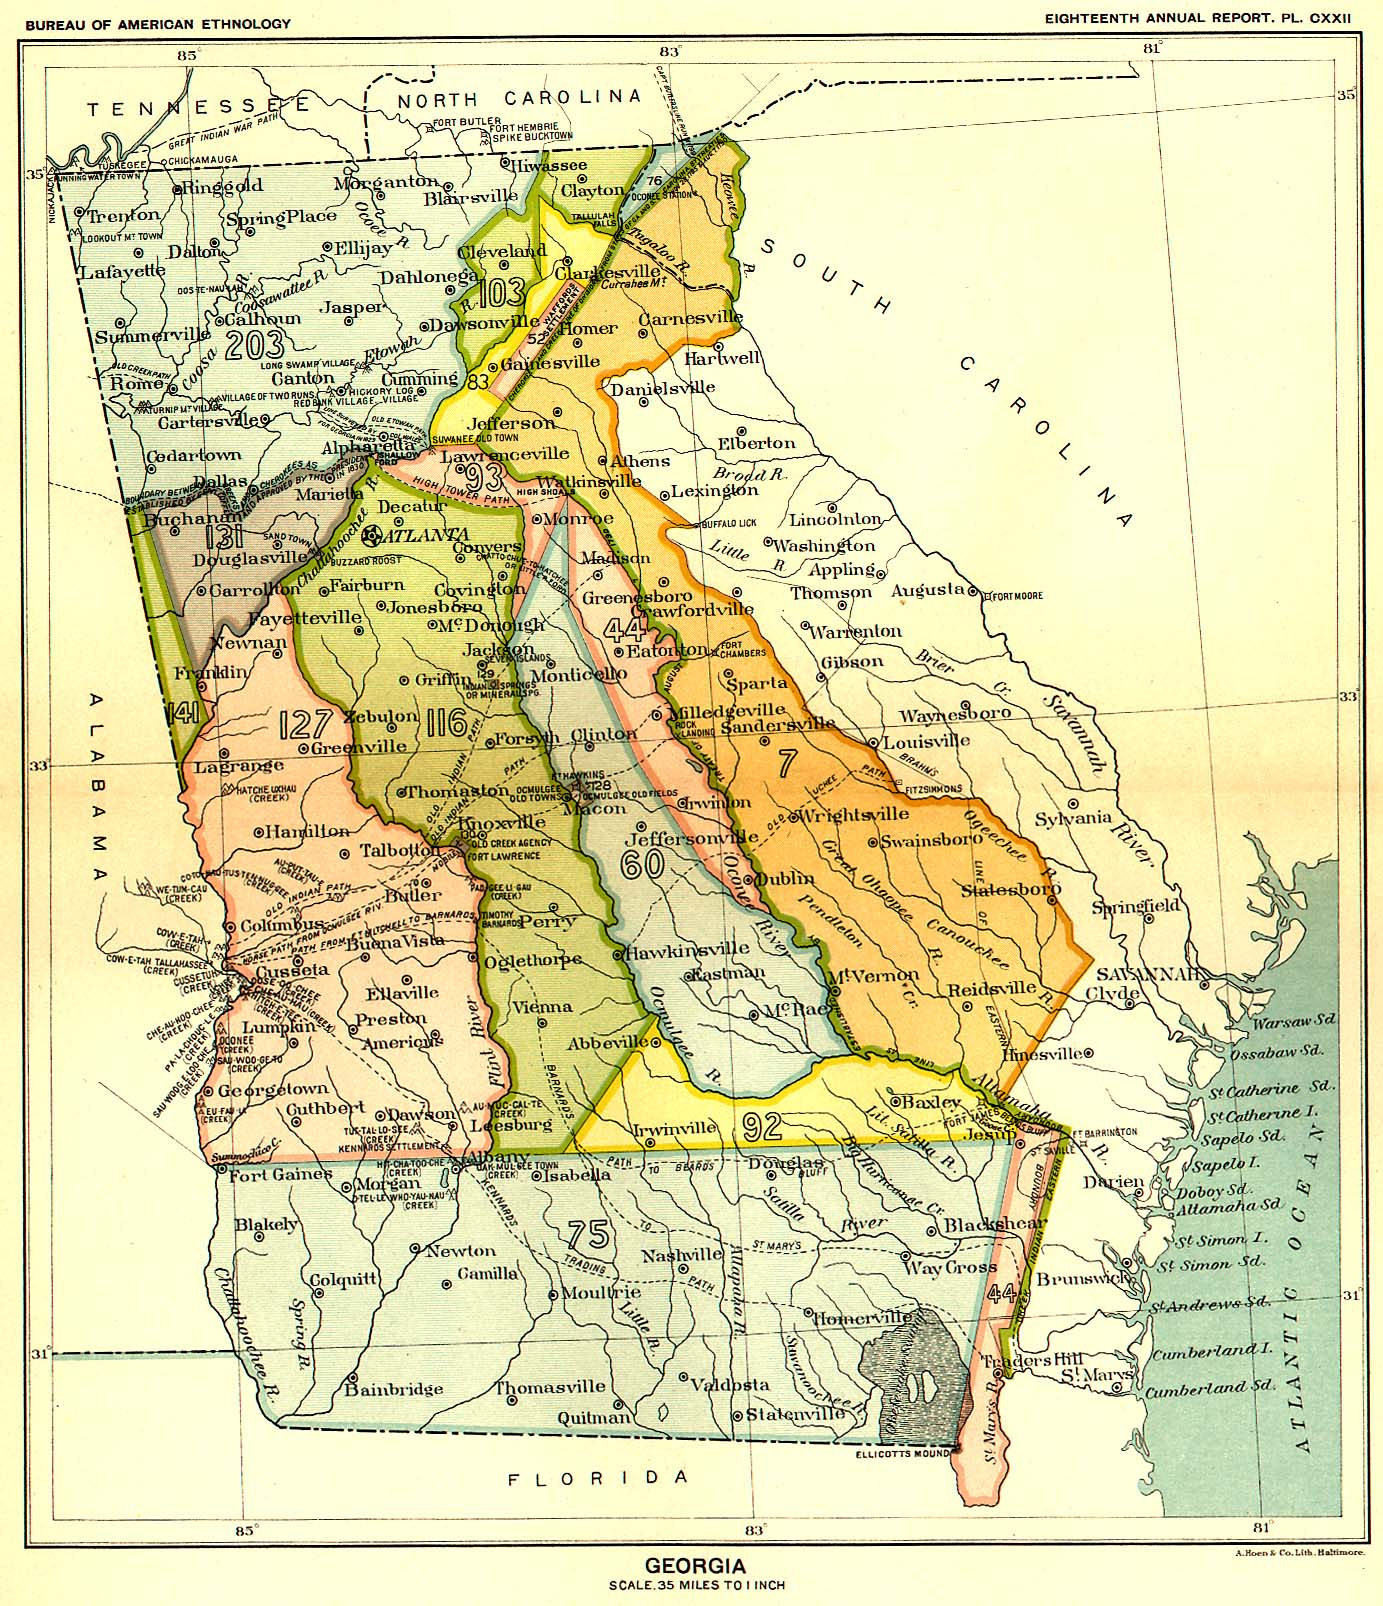 Indian Land Cessions Maps And Treaties In The American Southeast - Map of us tribal lands